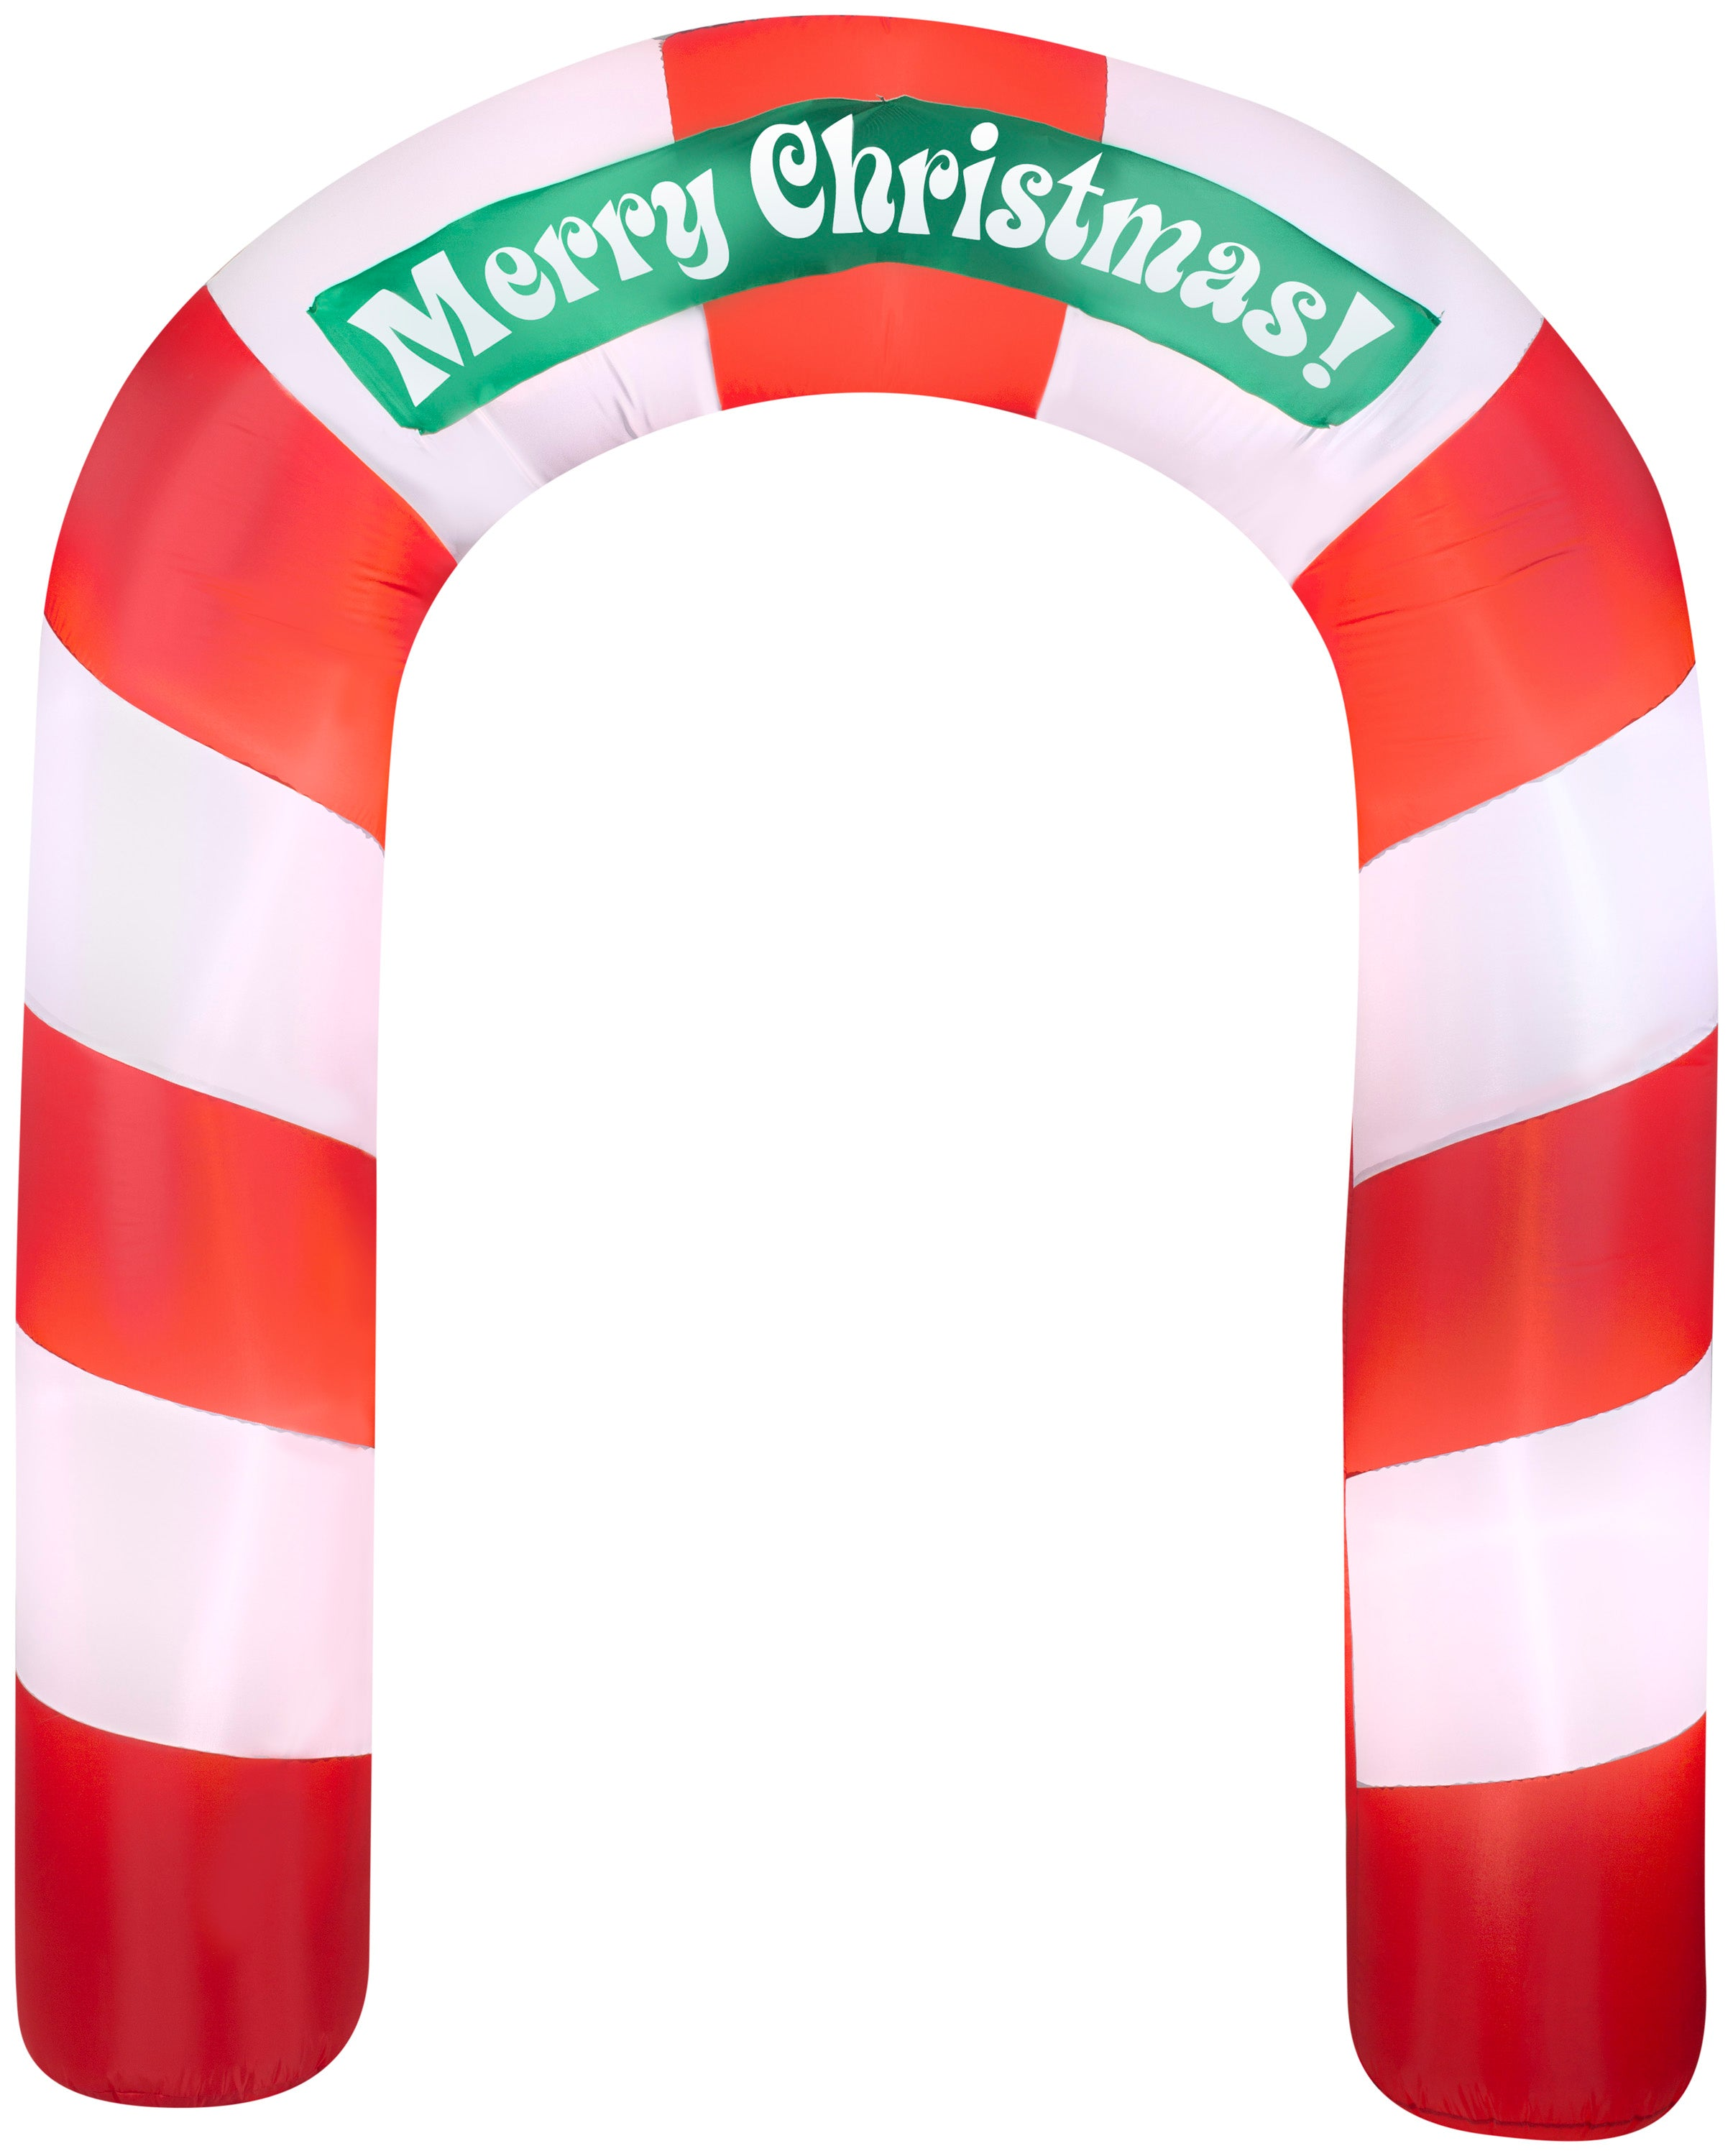 7.5' Airblown Archway Merry Christmas Inflatable